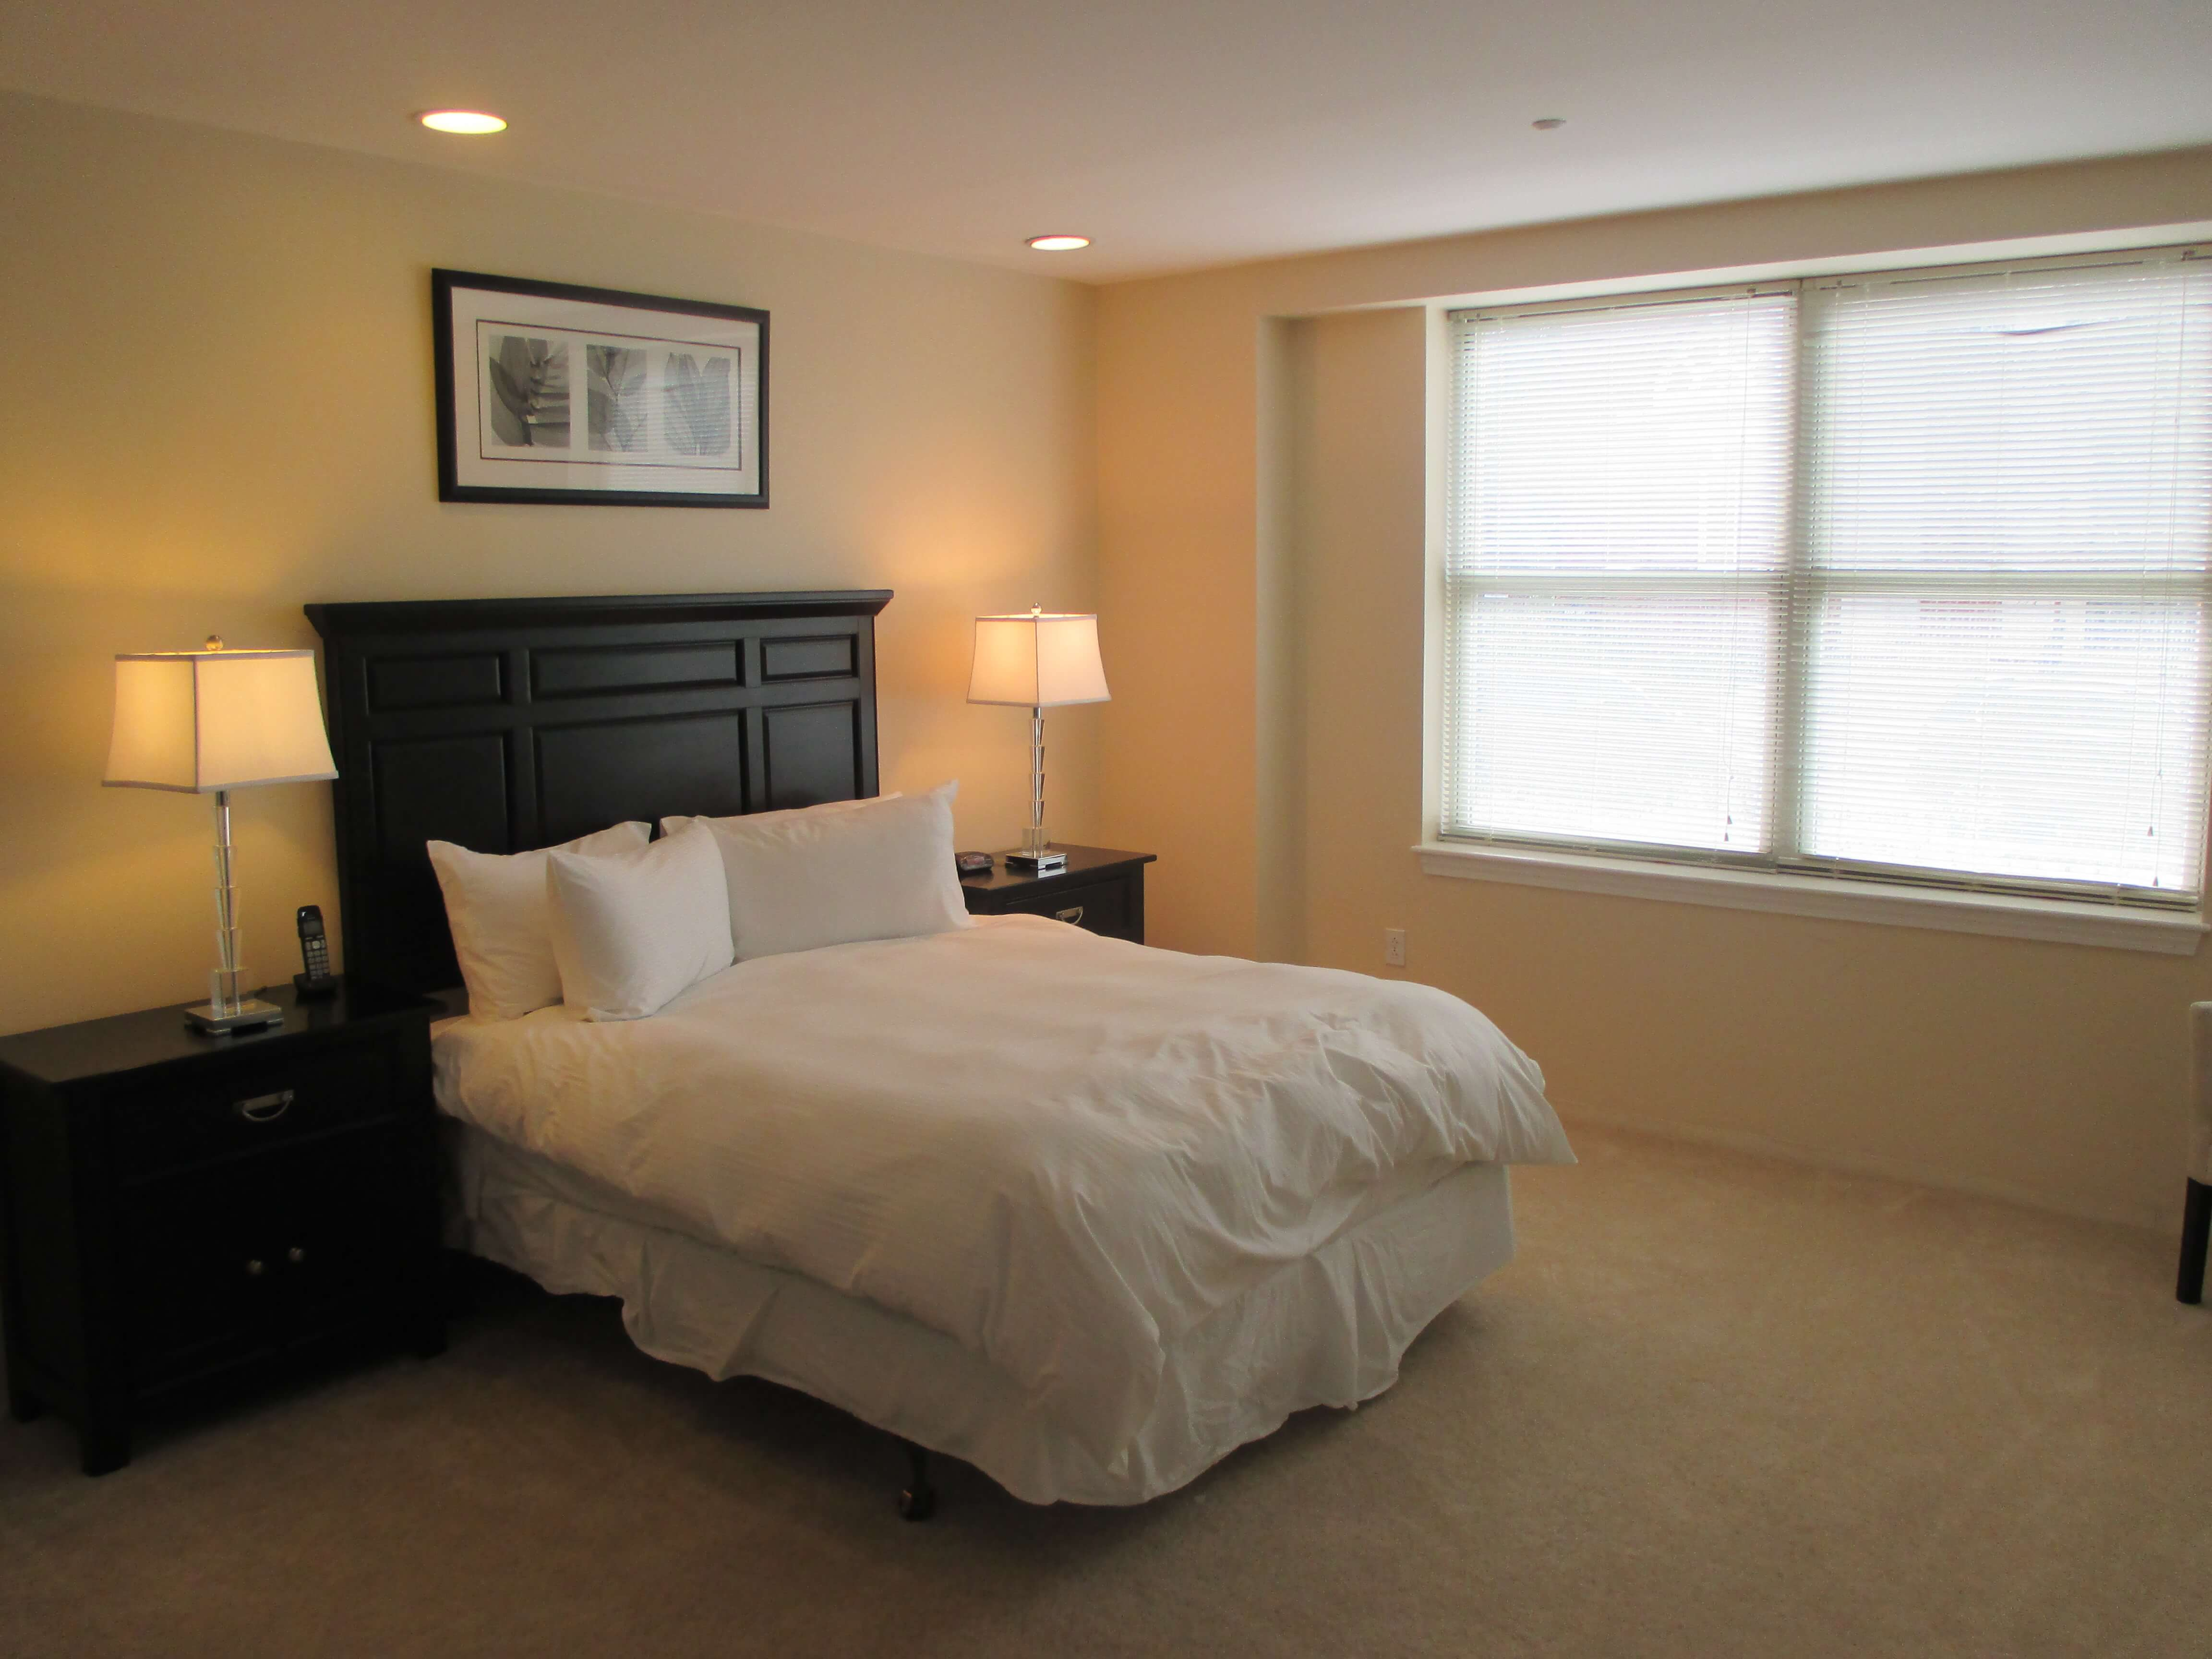 furnished 1 bedroom apartment for rent in fenway kenmore boston area